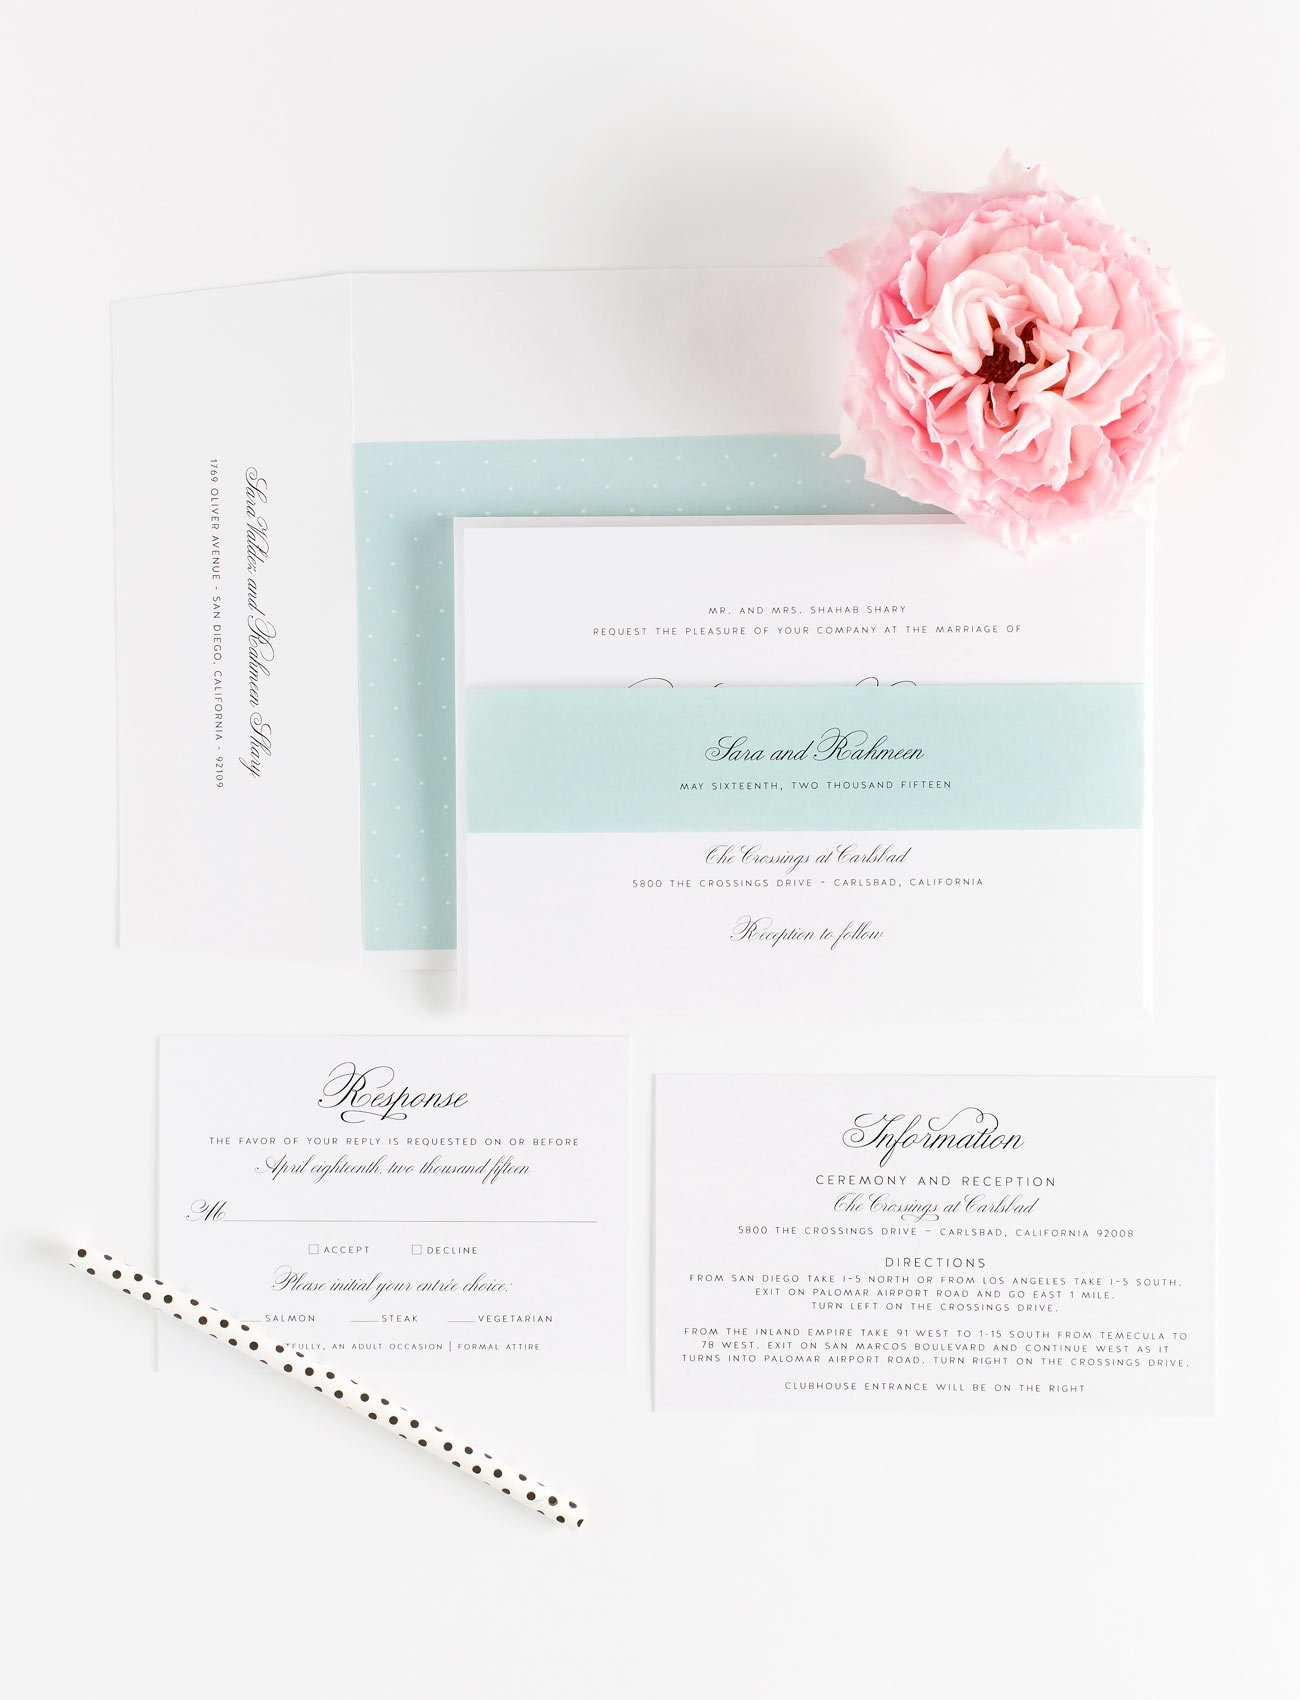 Elegant Wedding Invitations in Mint with Polka Dot Accents